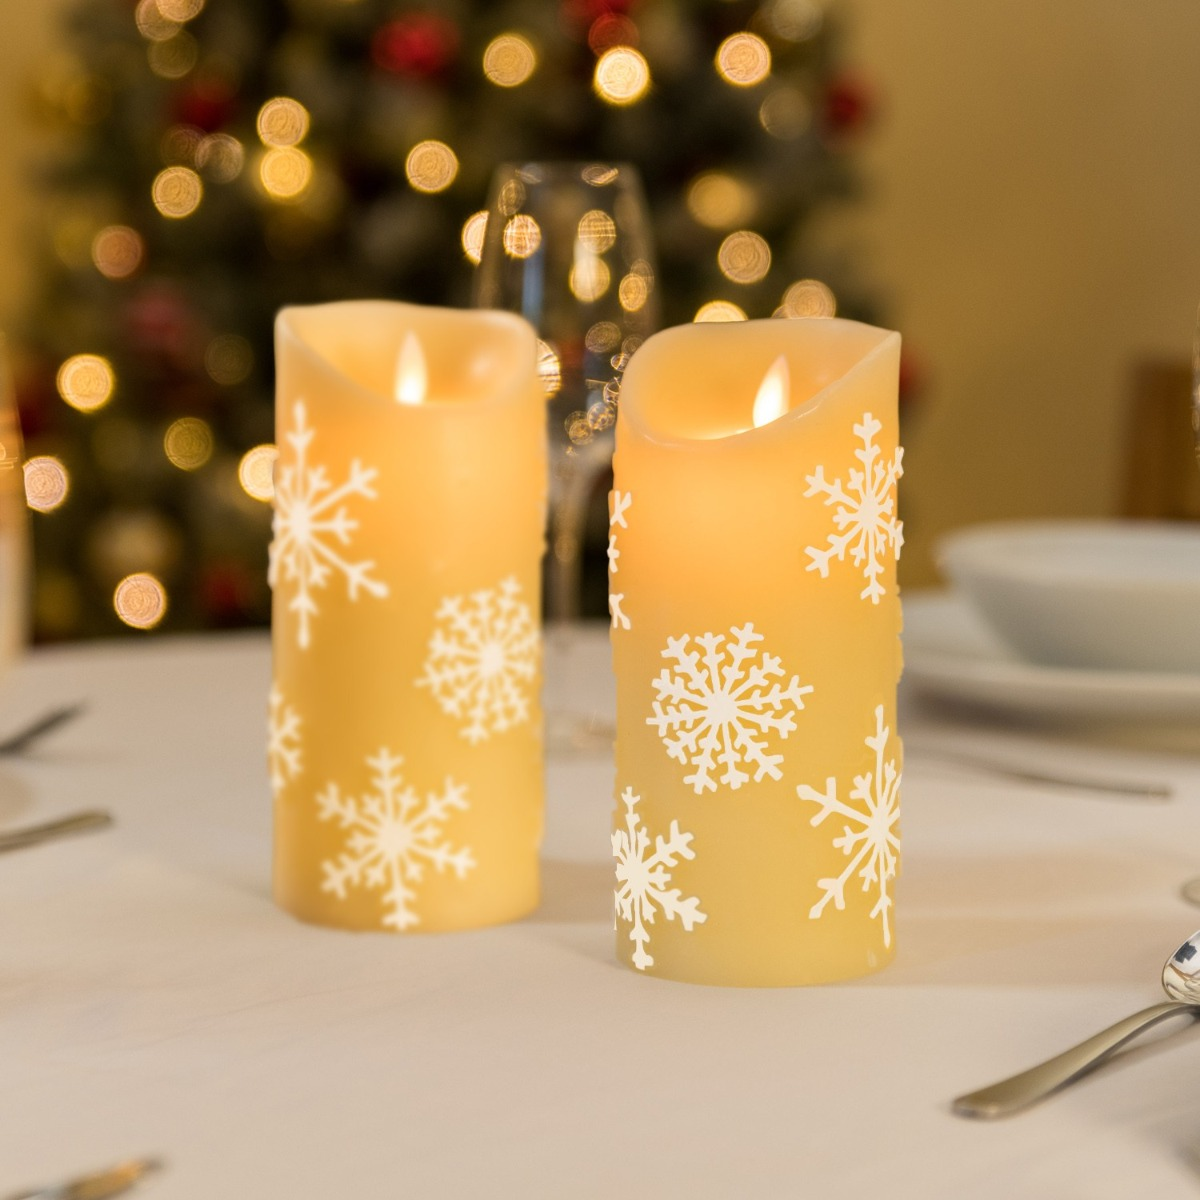 Image of Christow Snowflake LED Christmas Candles (2 Pack) - Cream